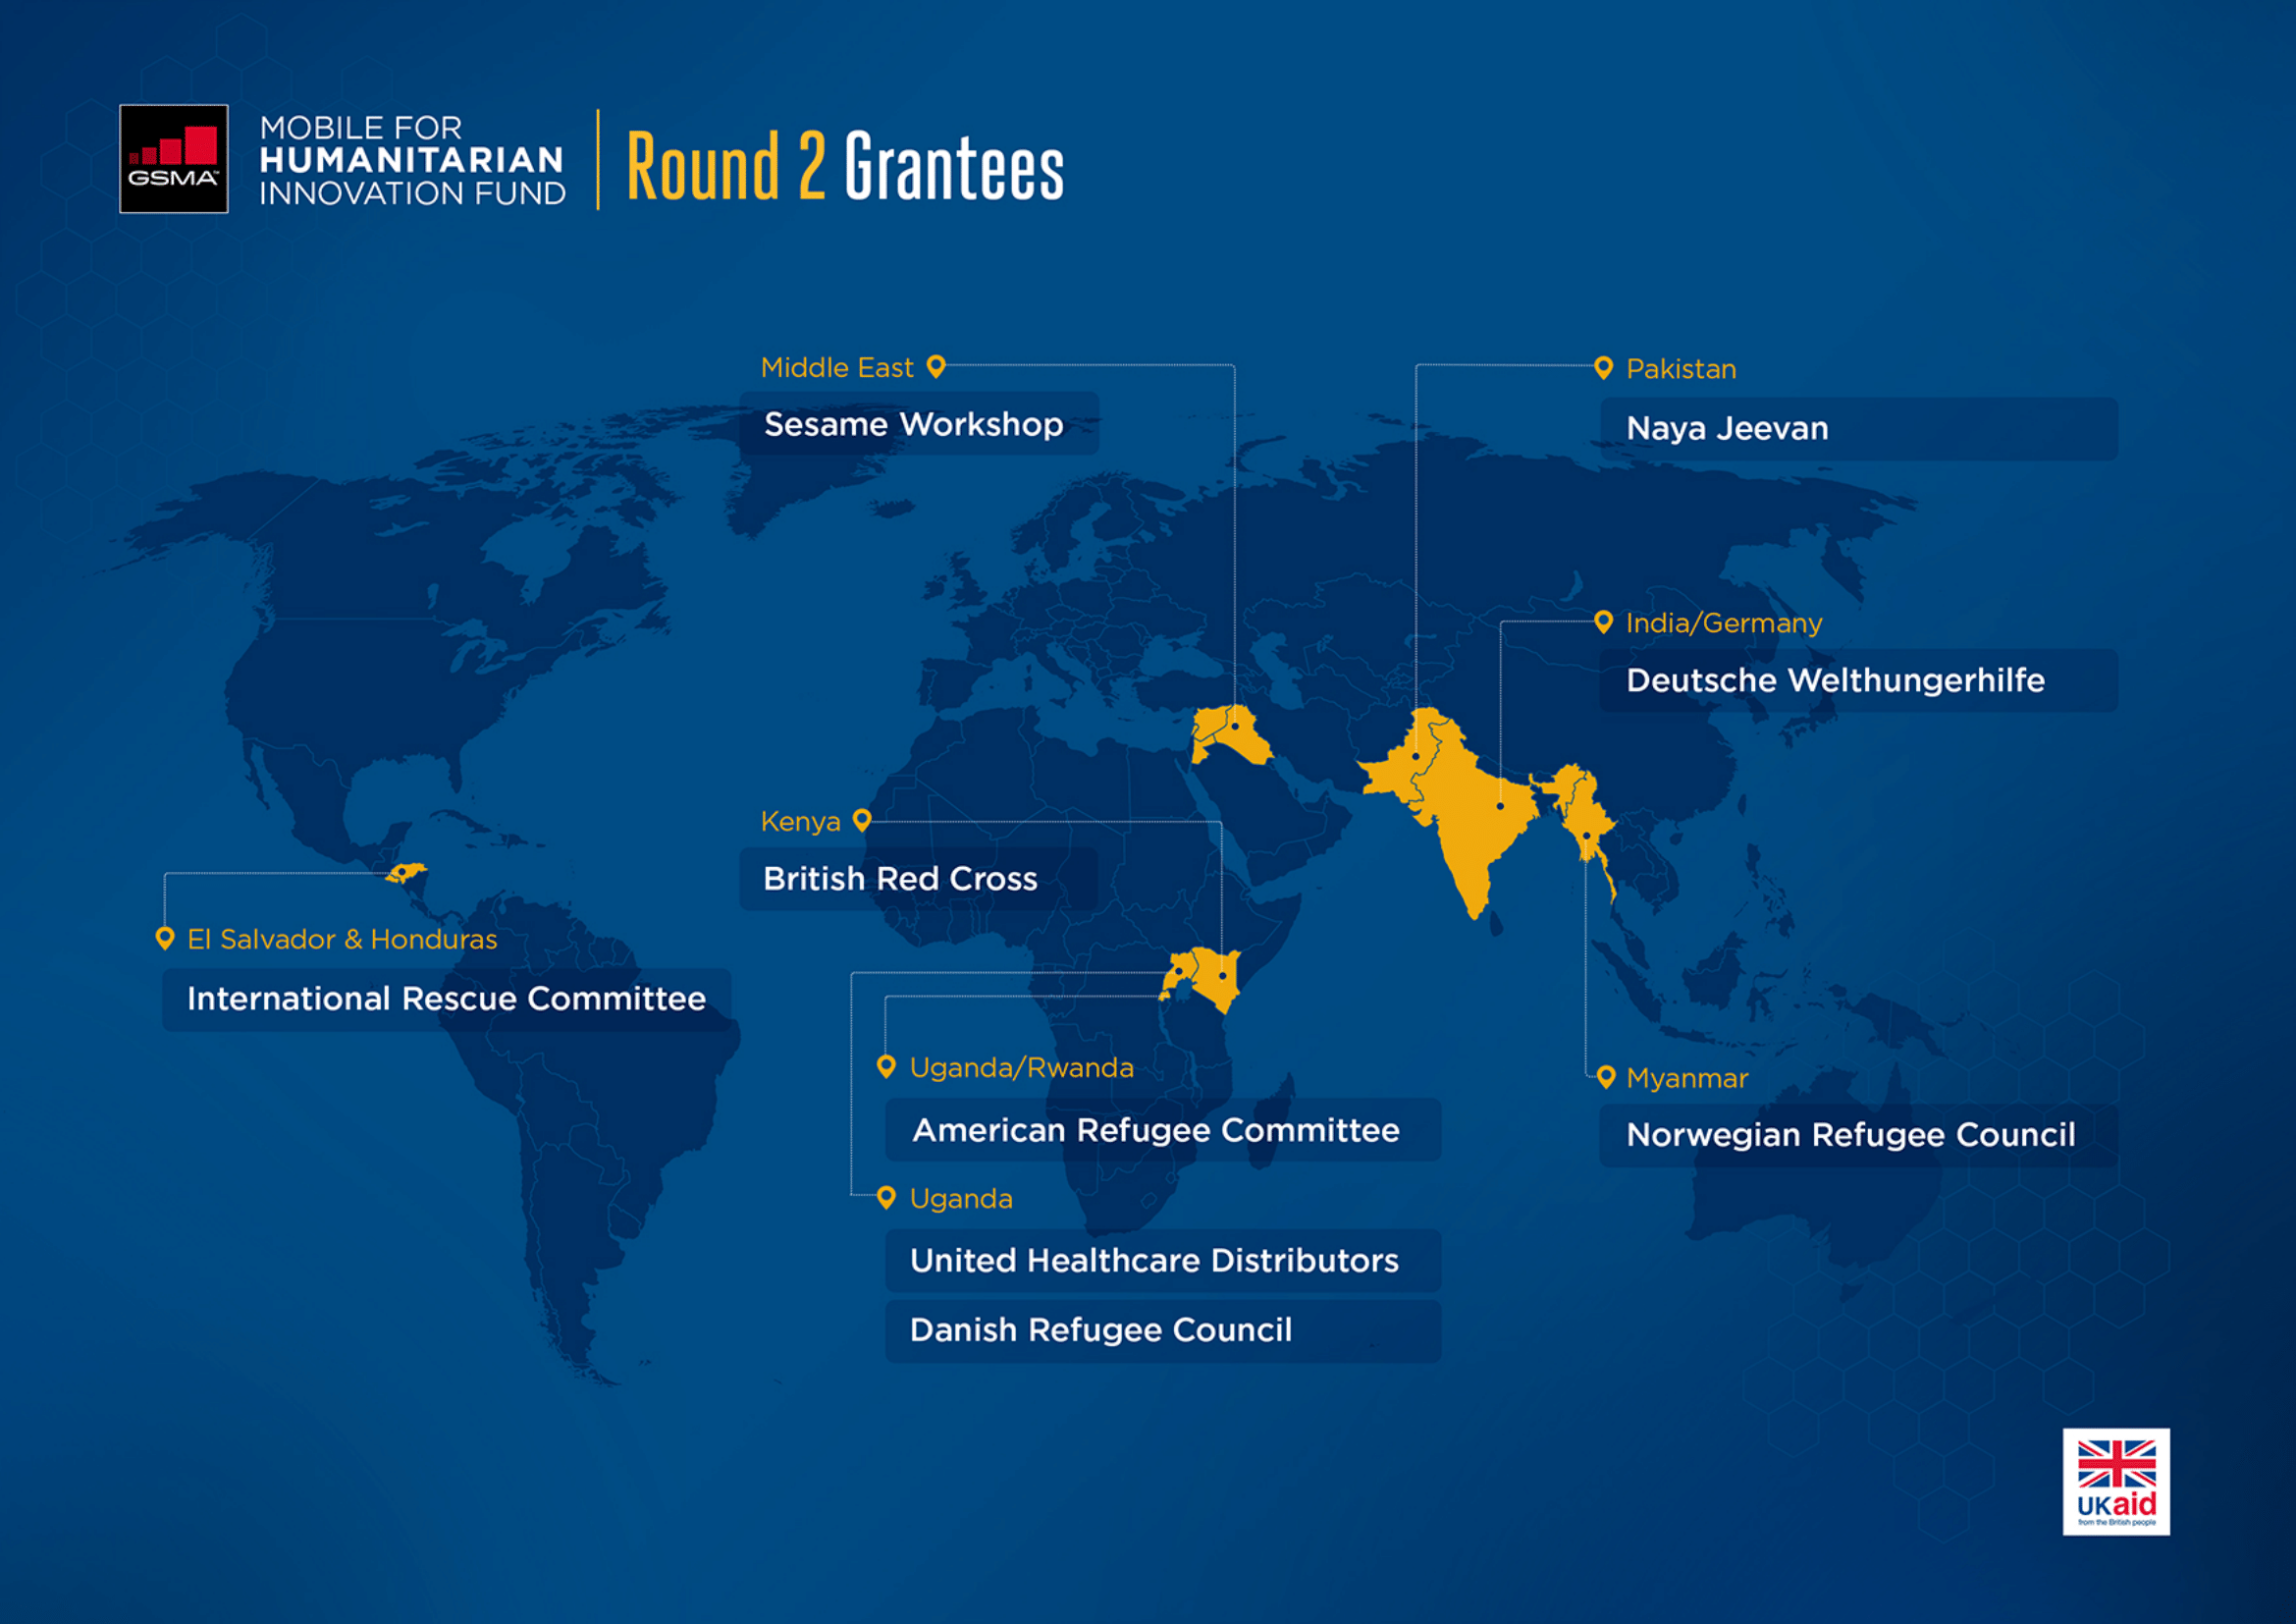 A map of our nine Round 2 grantees